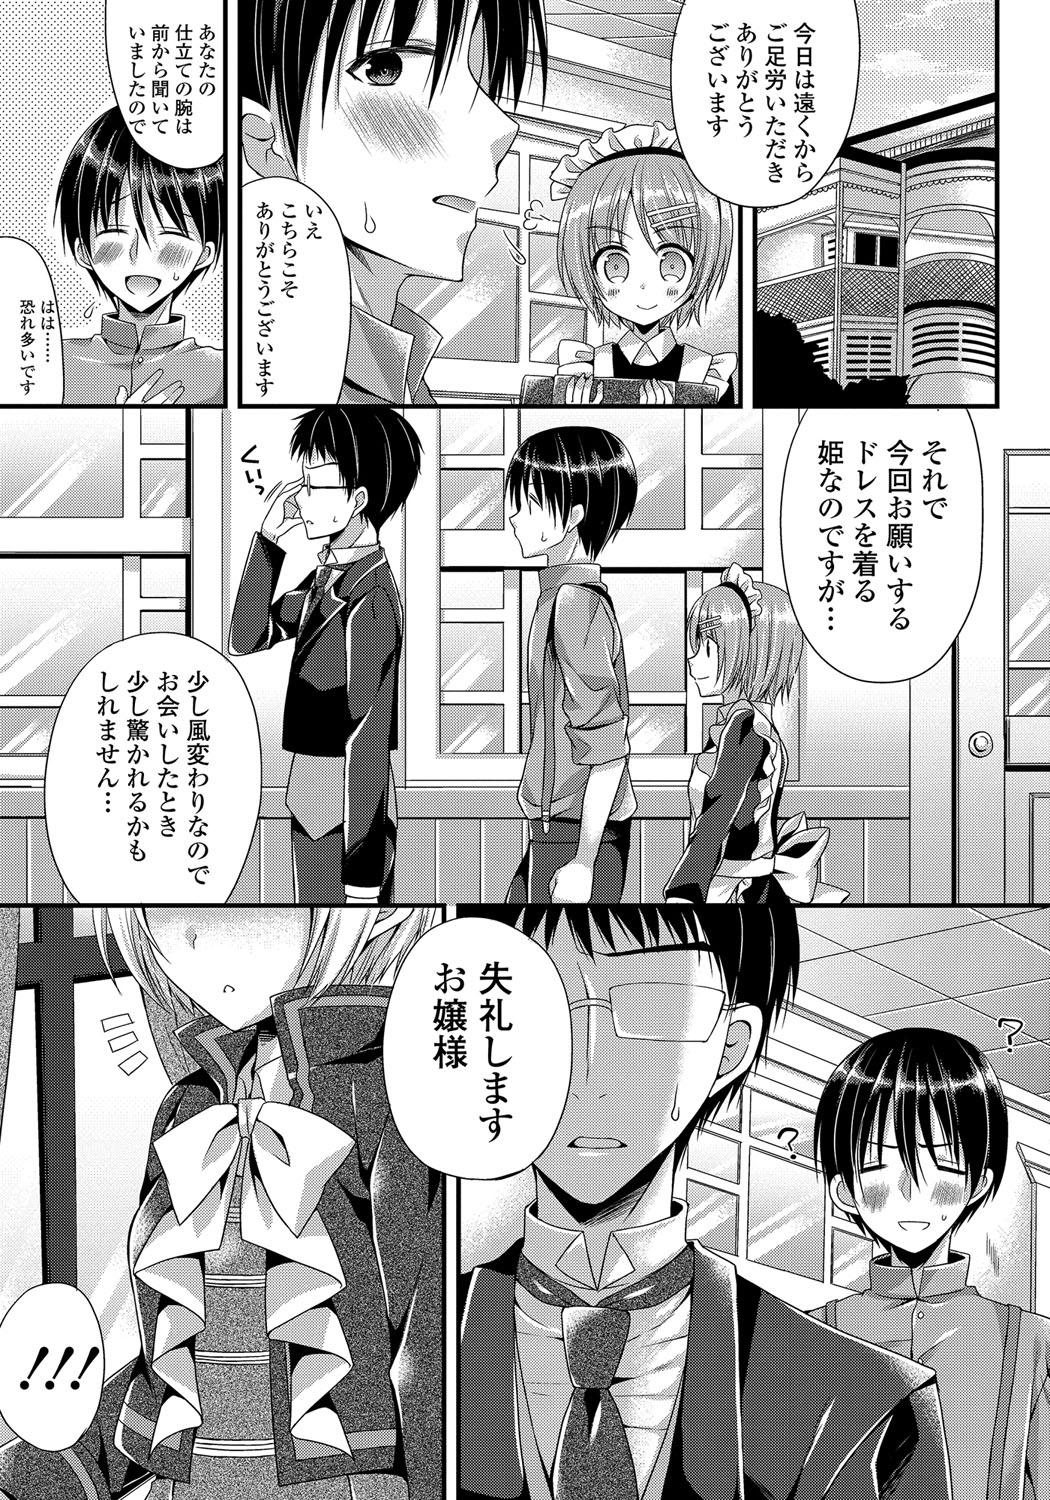 Kanojo to Hajimeteno - For the First Time with Her 171